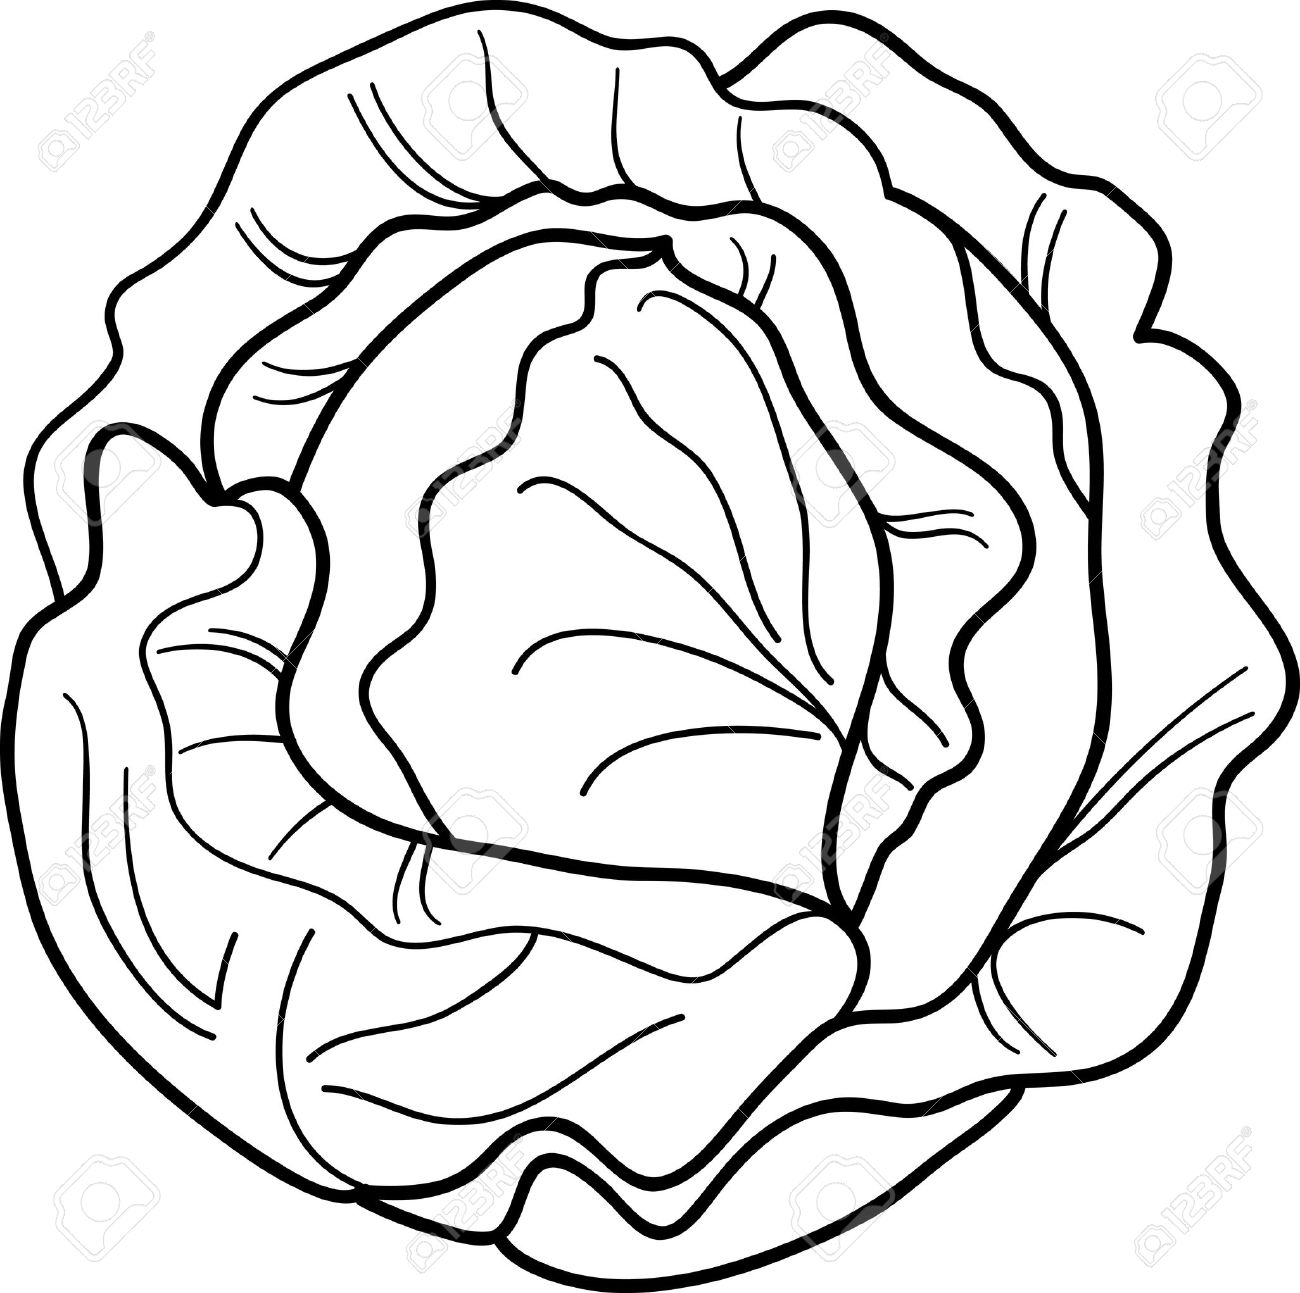 1300x1293 Cabbage Clipart Fruits And Vegetable